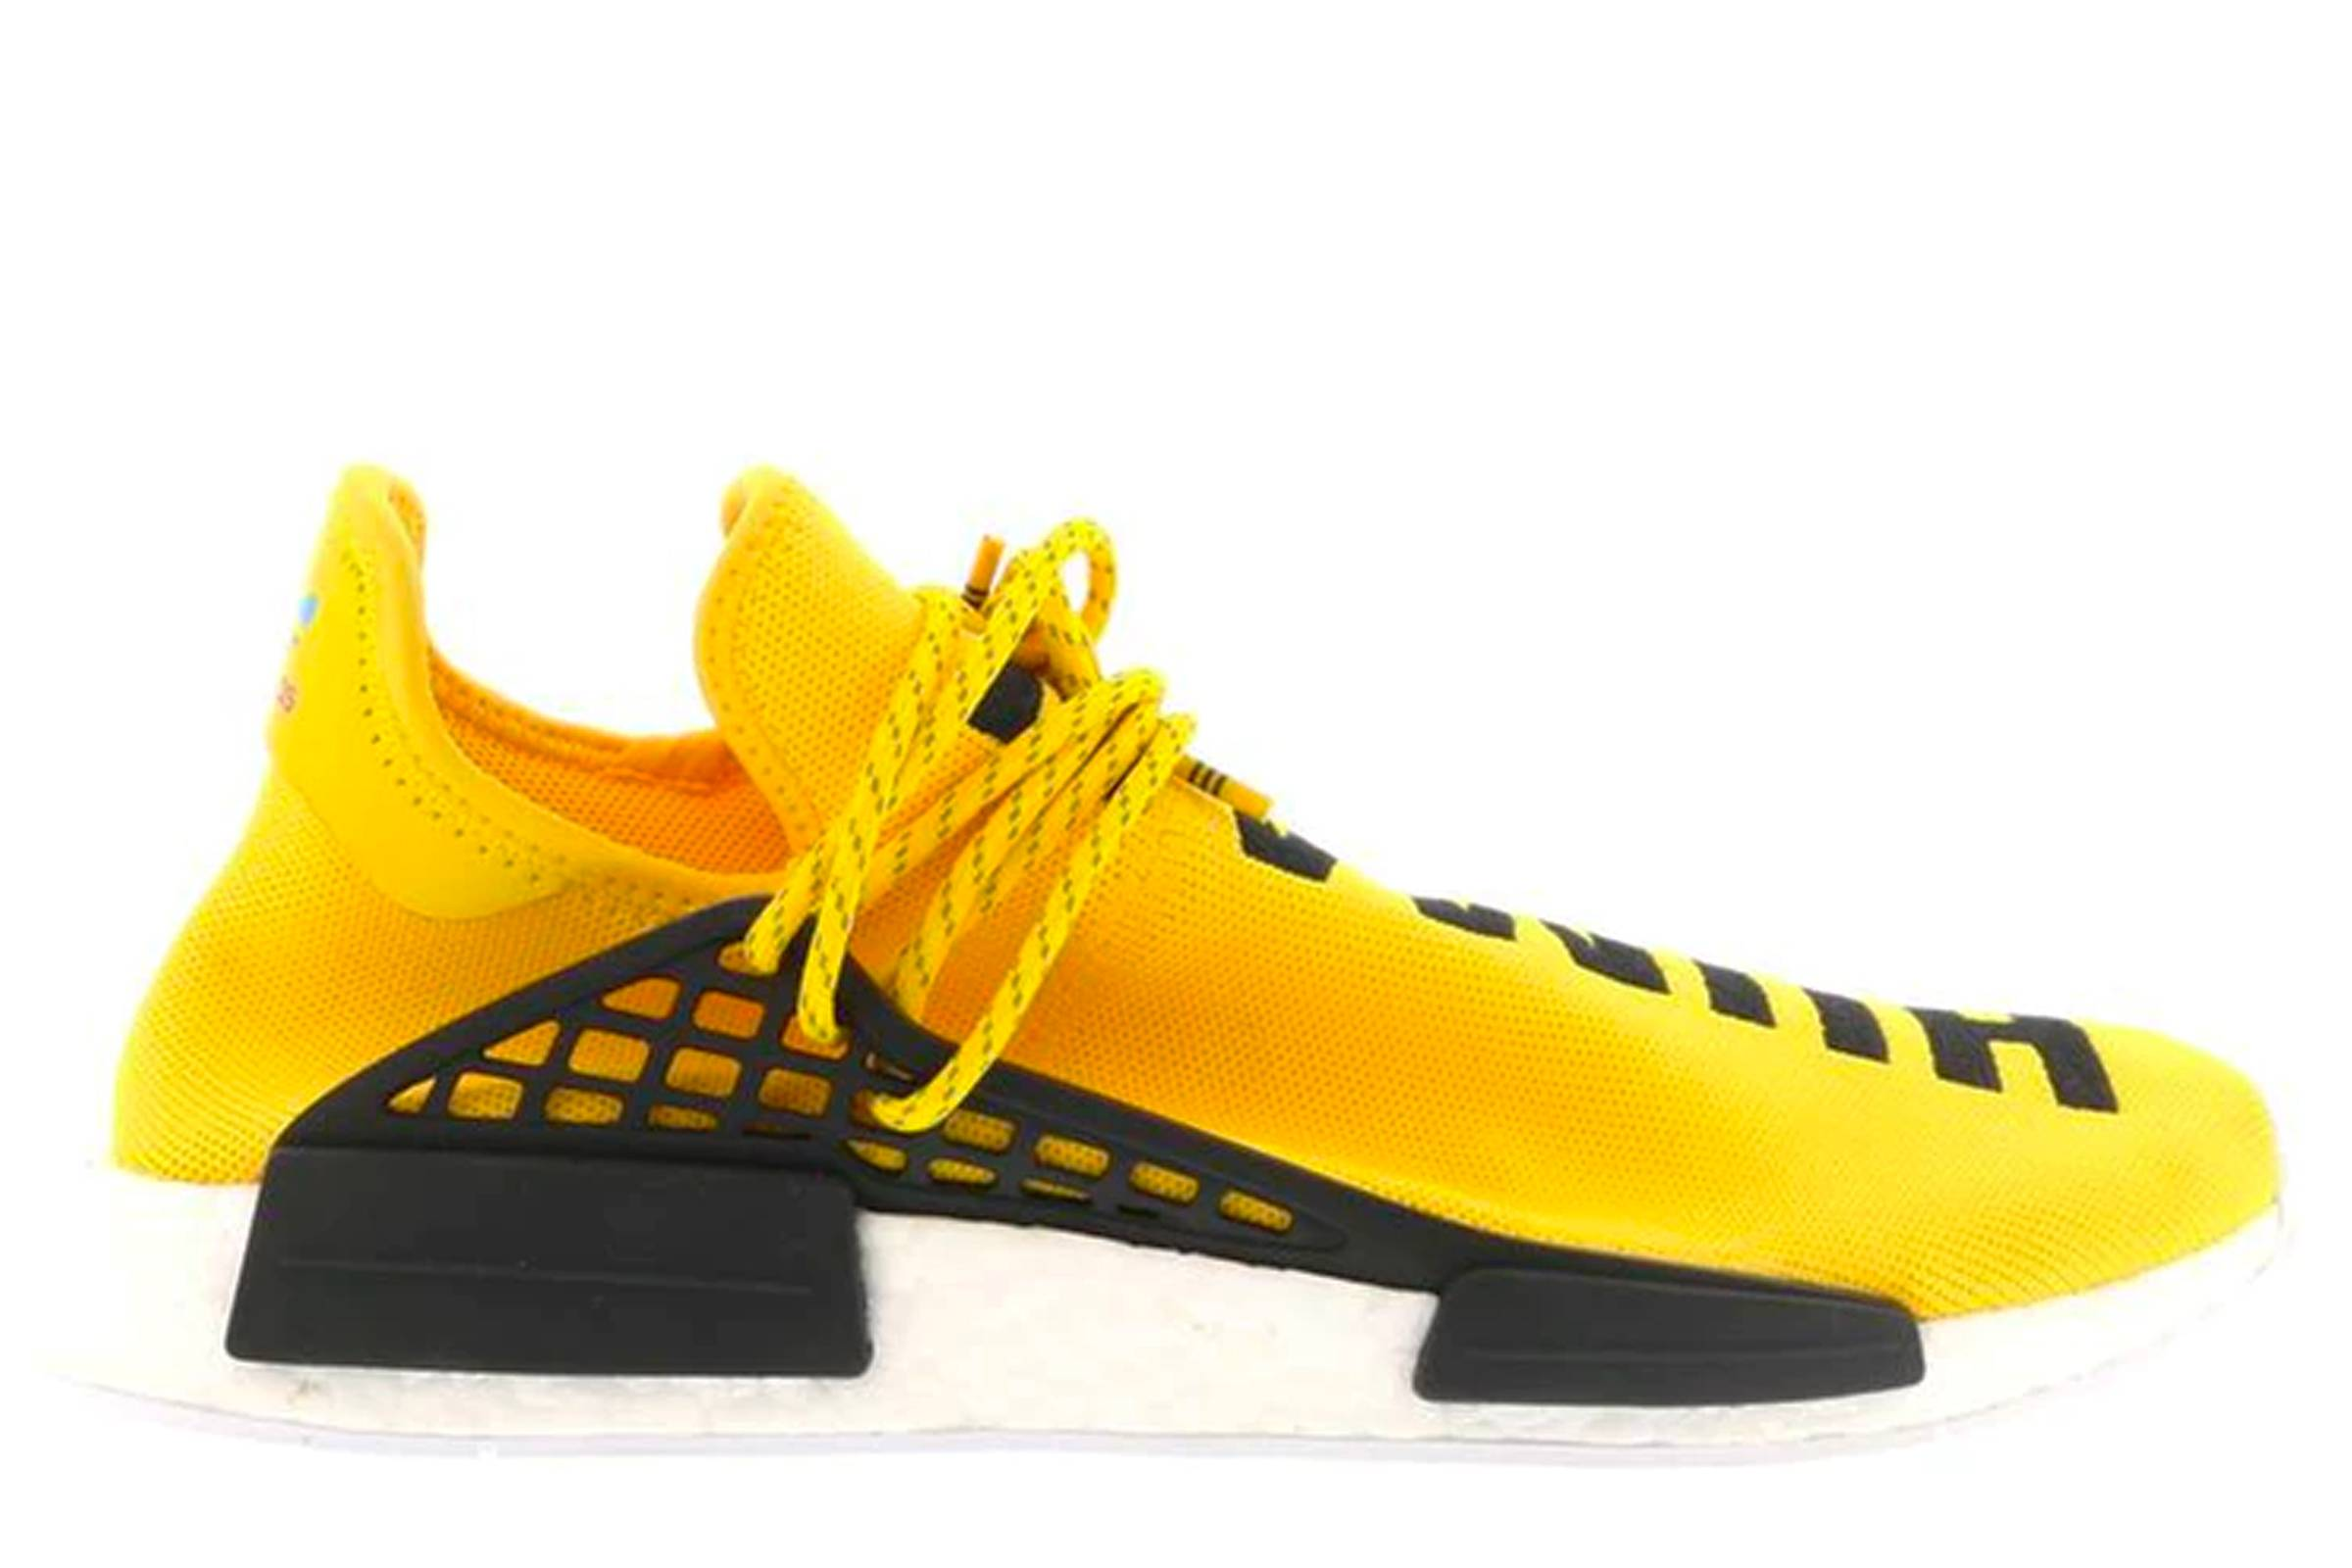 adidas x Pharrell Williams HU NMD Human Race, Yellow Version (2016) история adidas Boost